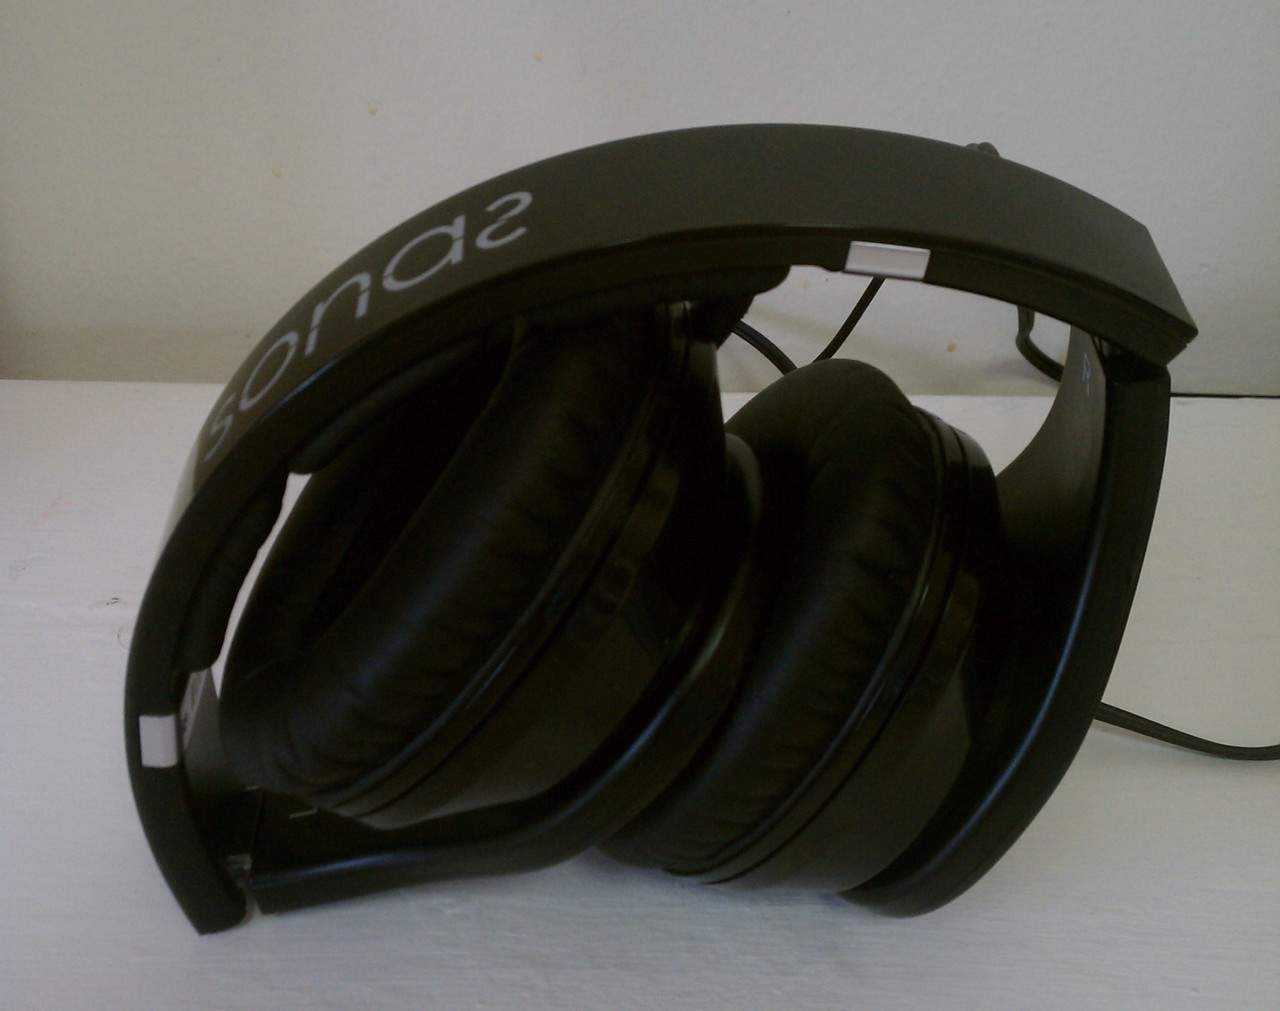 MEGATech Reviews: Rosewill Sonas Headphones